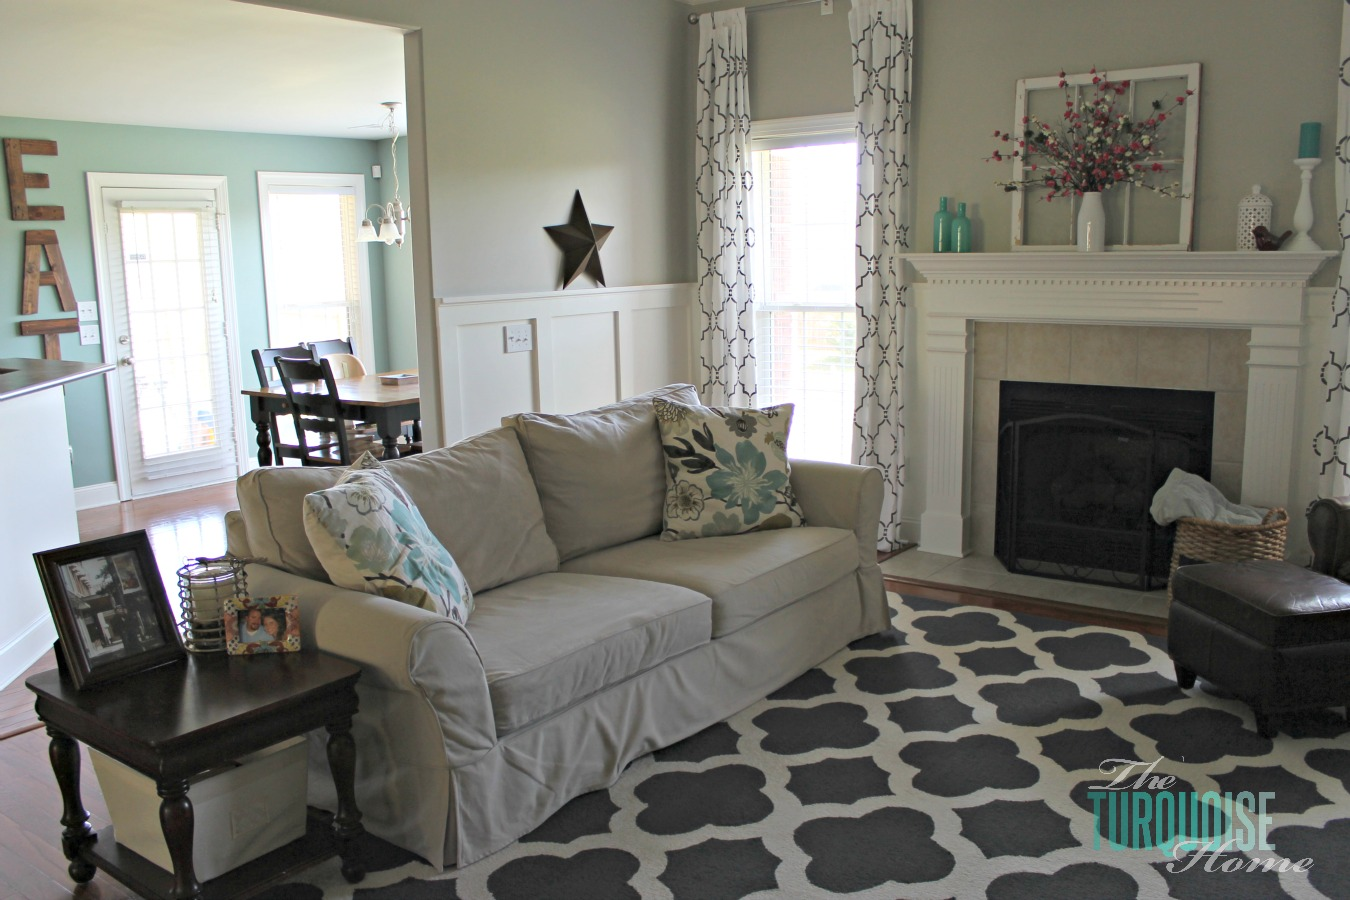 Diy Small Living Room Makeover Tv Unit Designs In The India Part 7 Final Reveal Turquoise Home Gorgeous With Beautiful Board And Batten Pottery Barn Sofa Stenciled